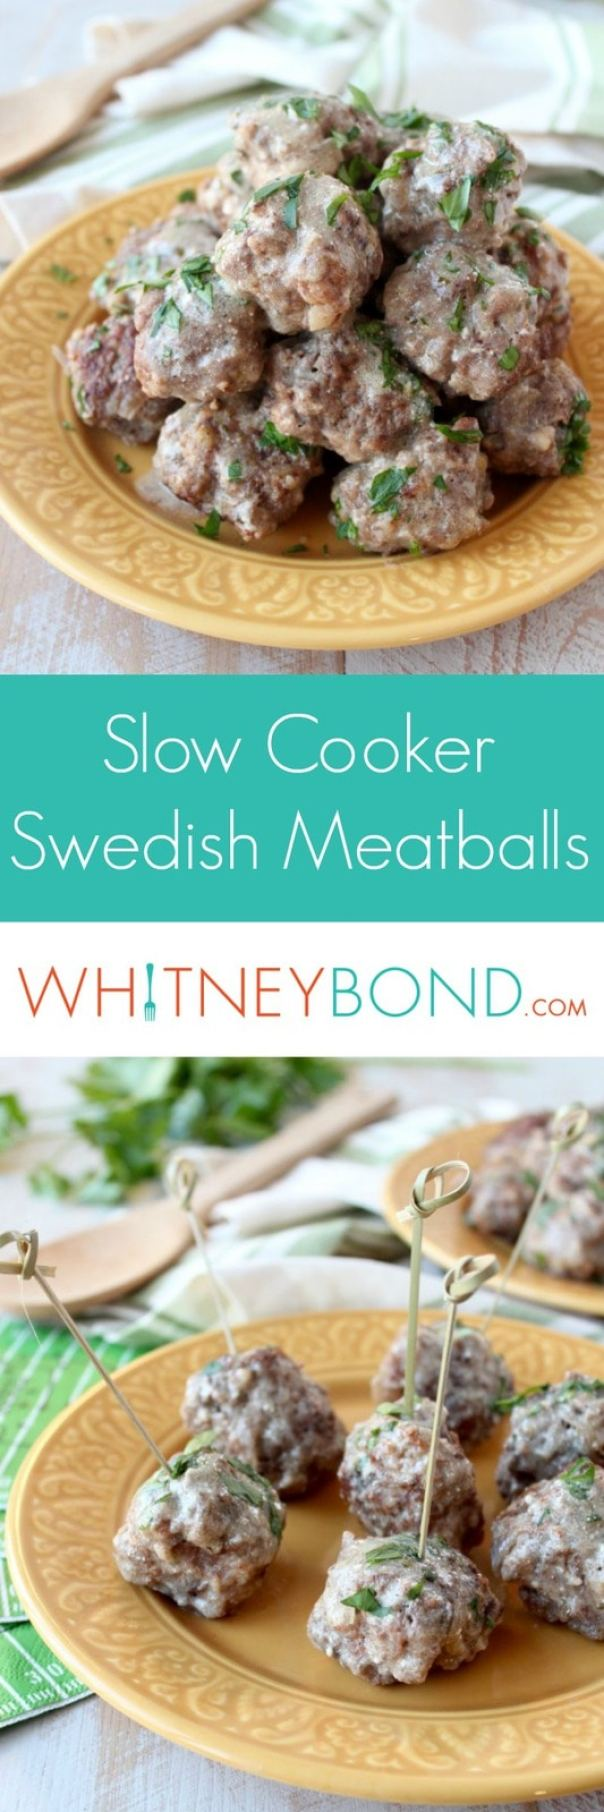 Slow Cooker Swedish Meatballs Recipe